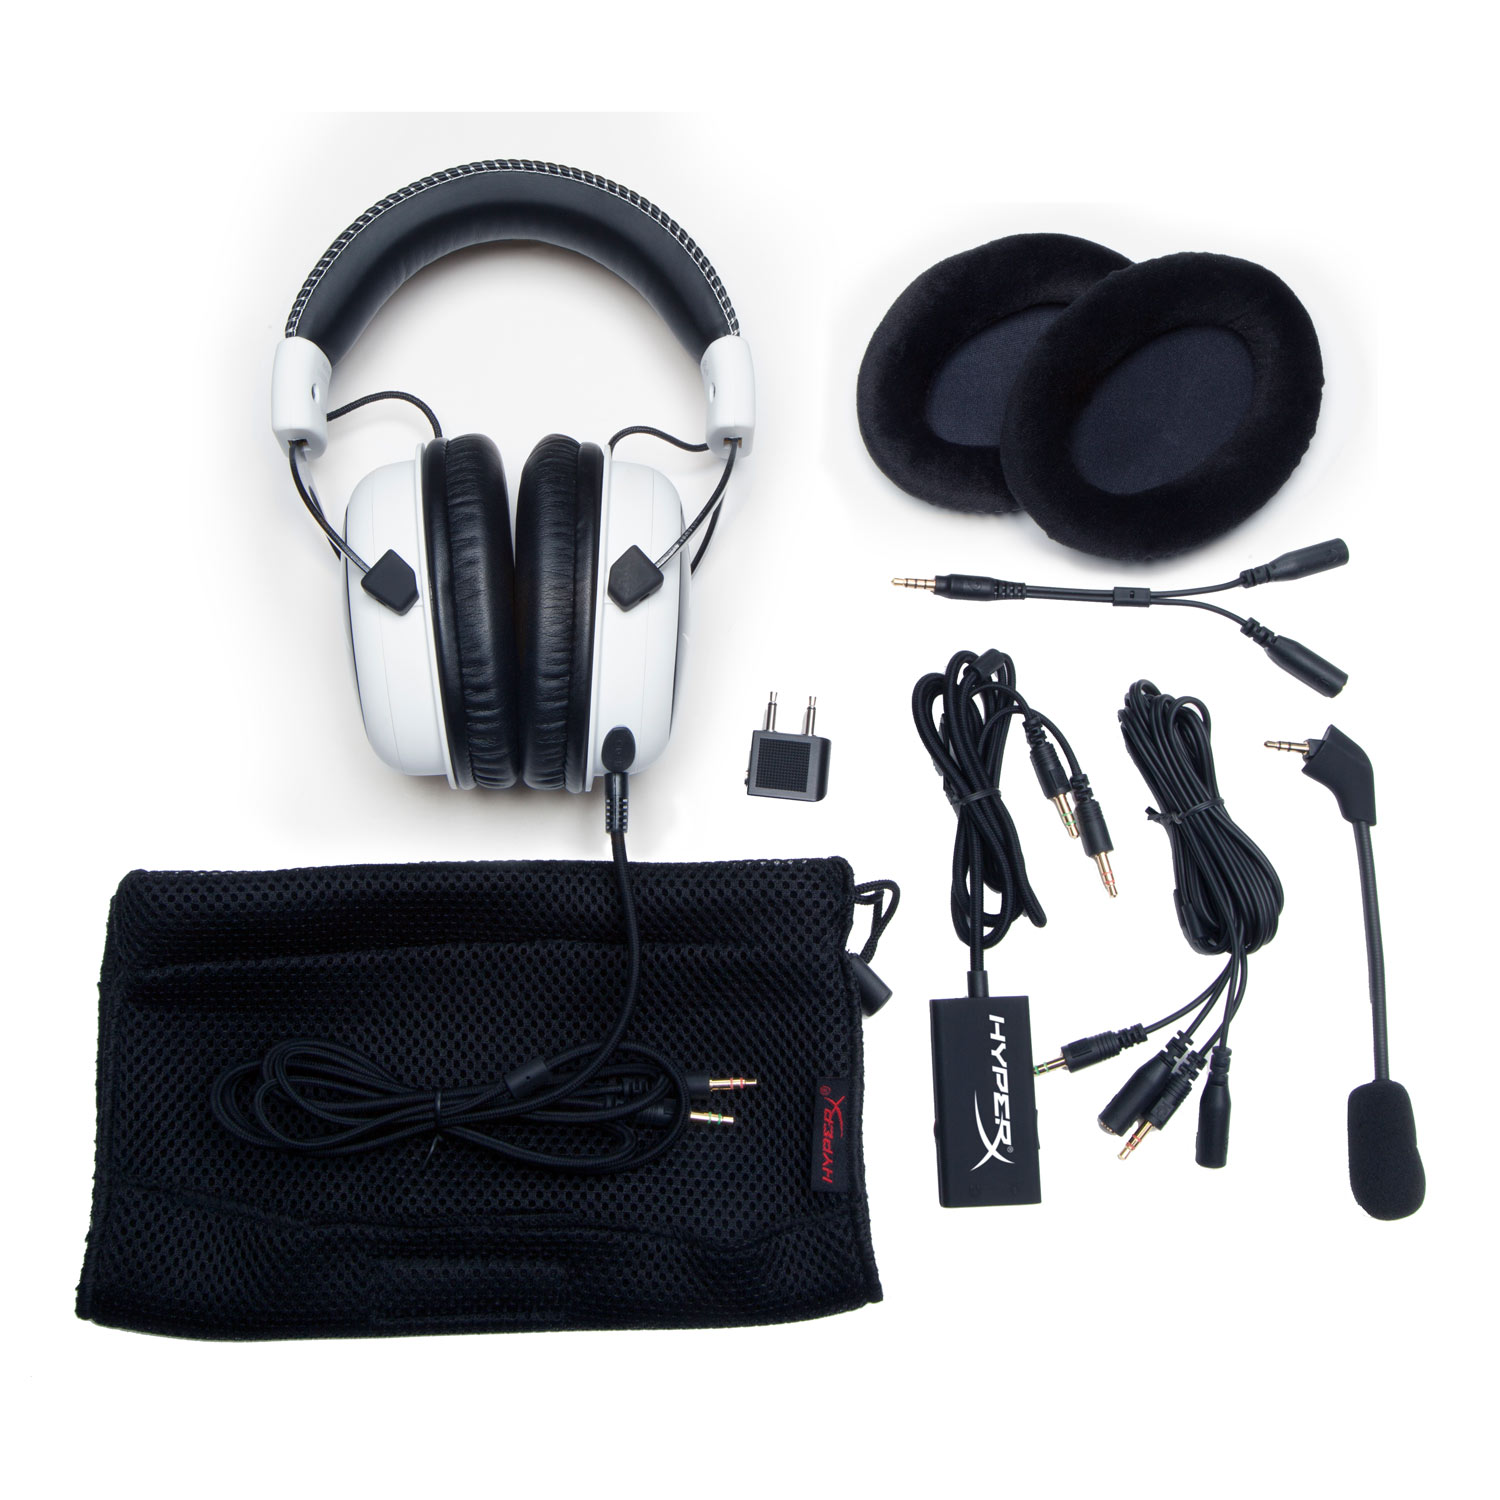 HyperX Cloud Gaming Headset (White) Stereo Blanc - Micro-casque - 3